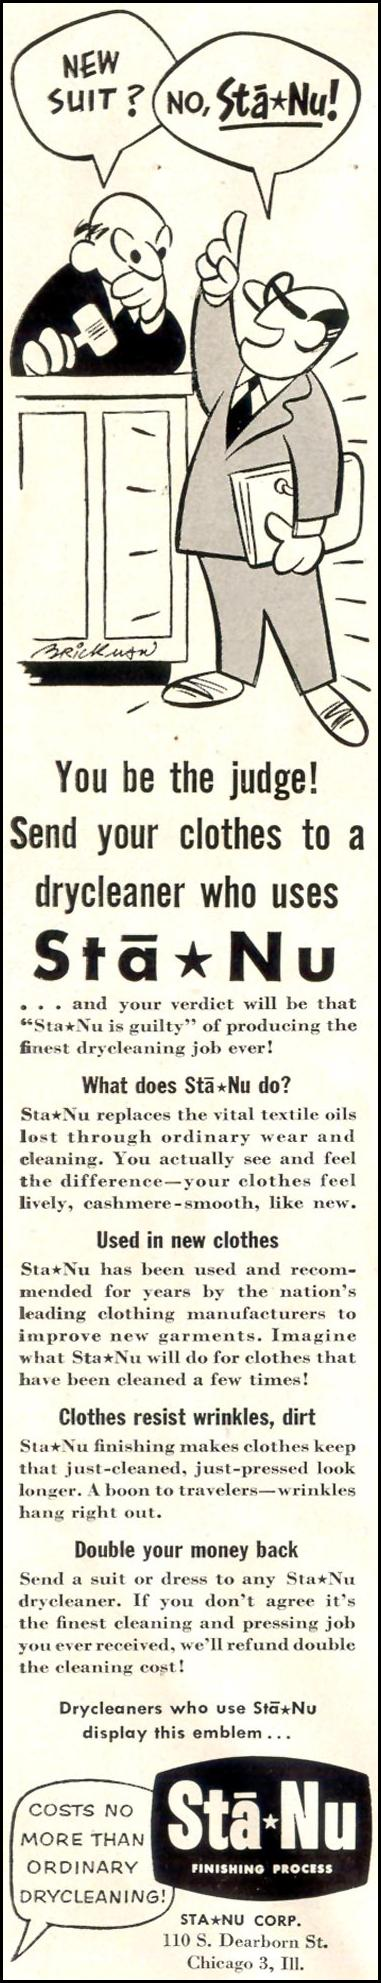 STA-NU FINISHING PROCESS LIFE 08/17/1953 p. 88